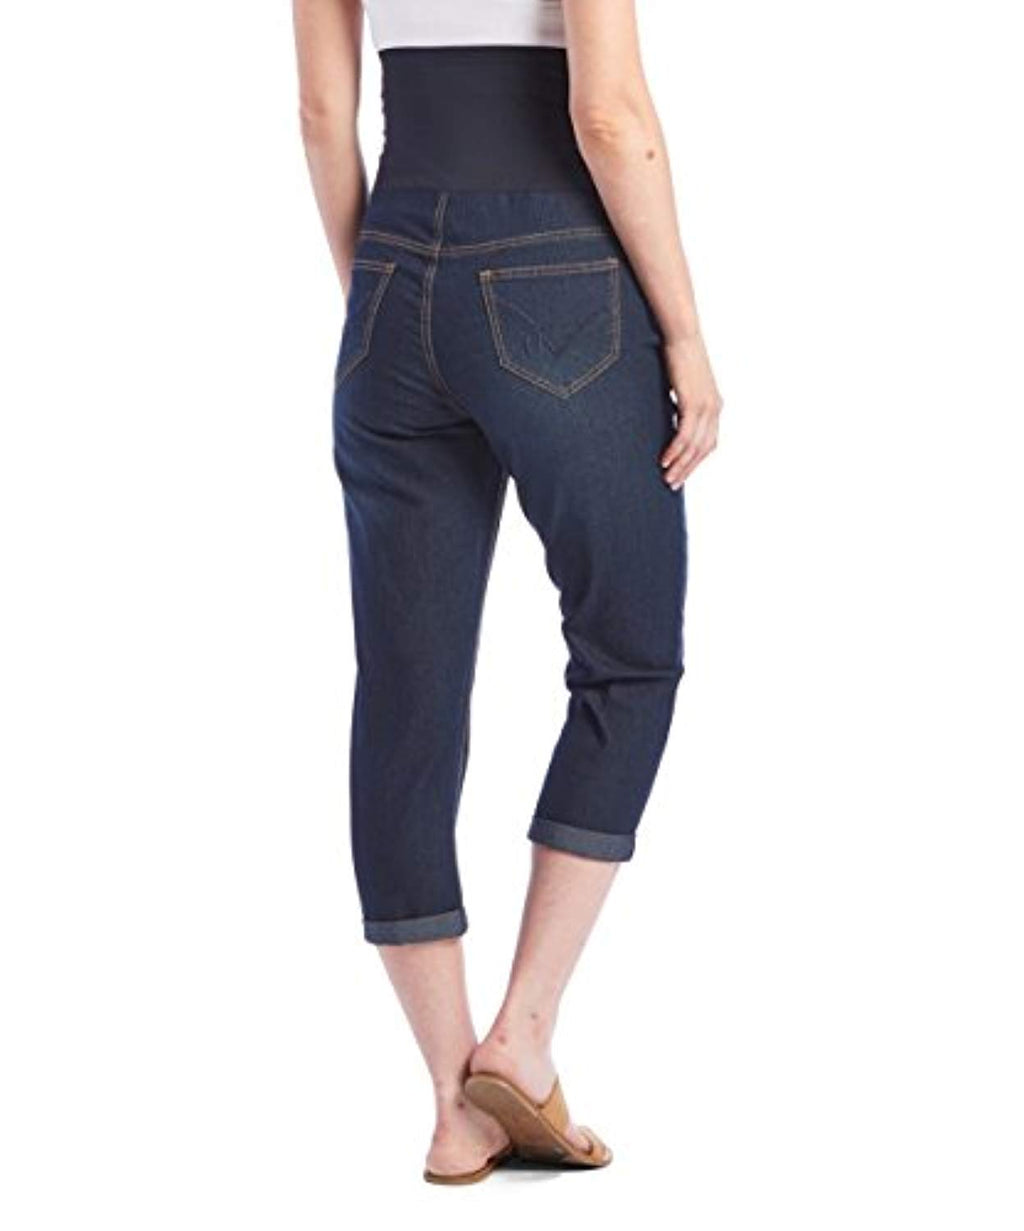 Capri Crop Straight Maternity Jeans - Mommylicious